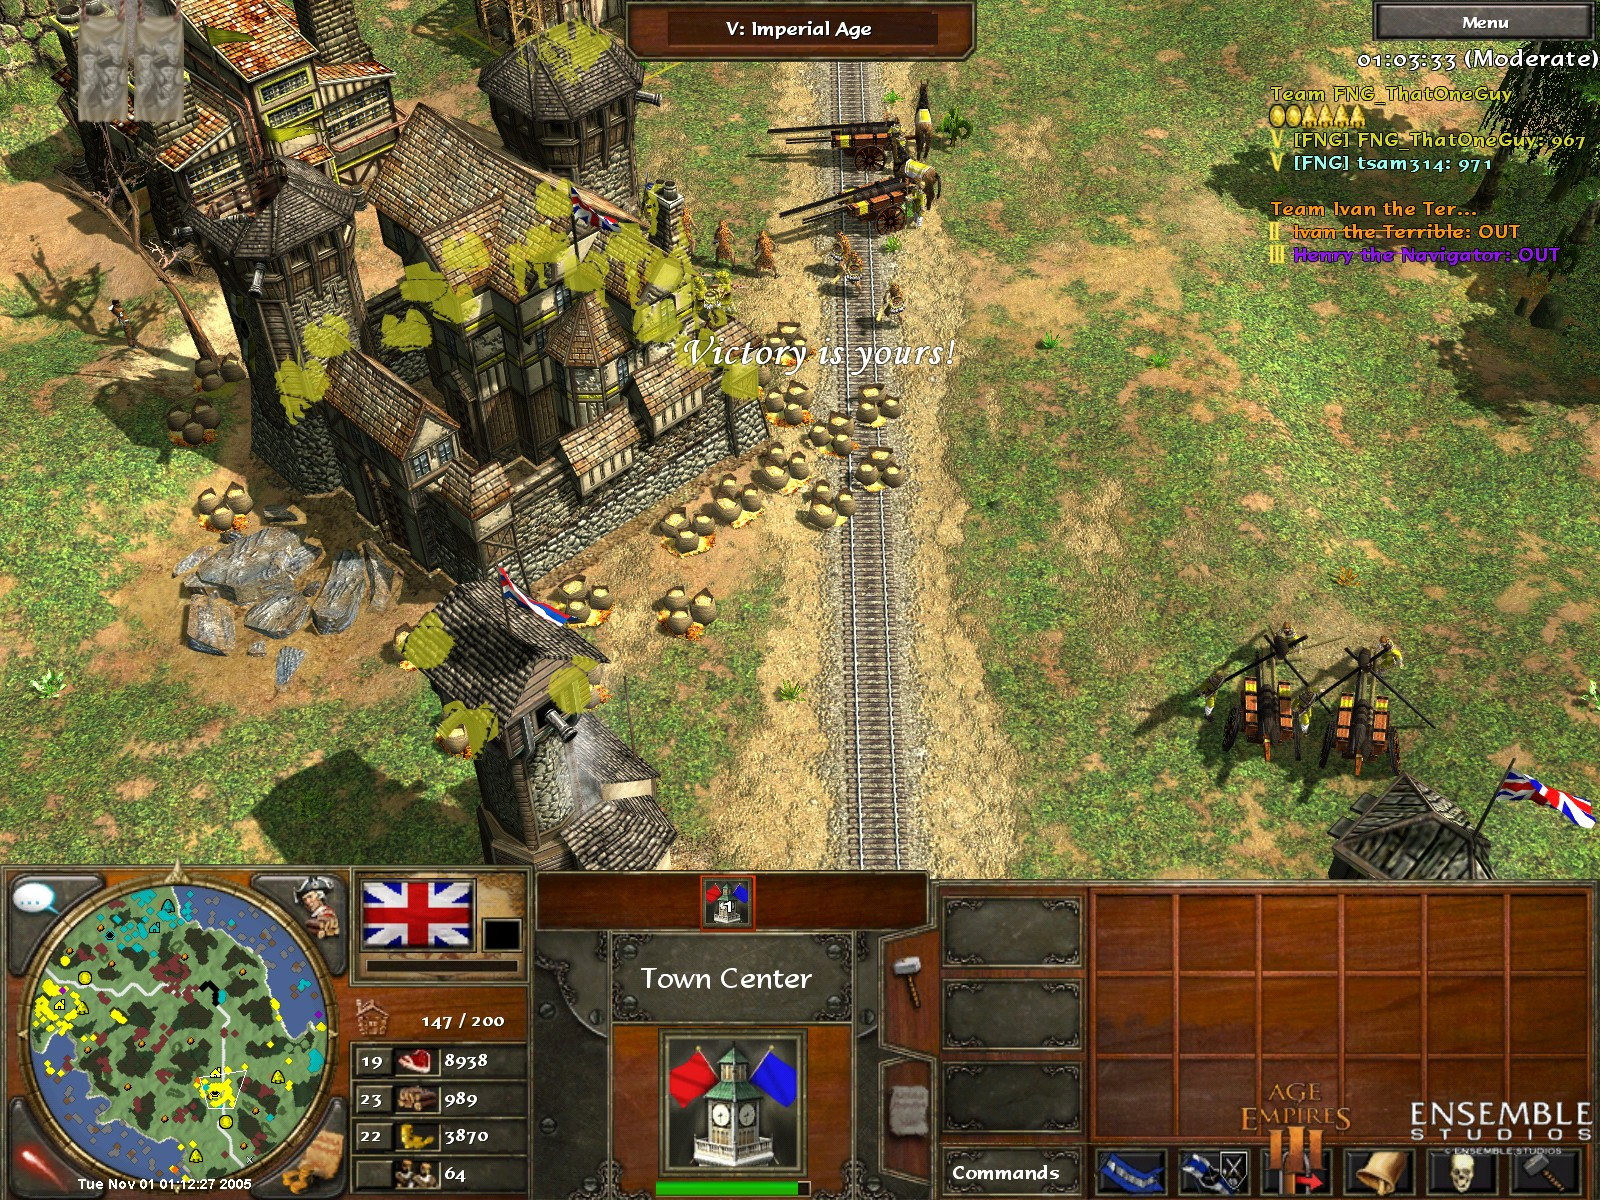 My First Age of Empires III Screenshots